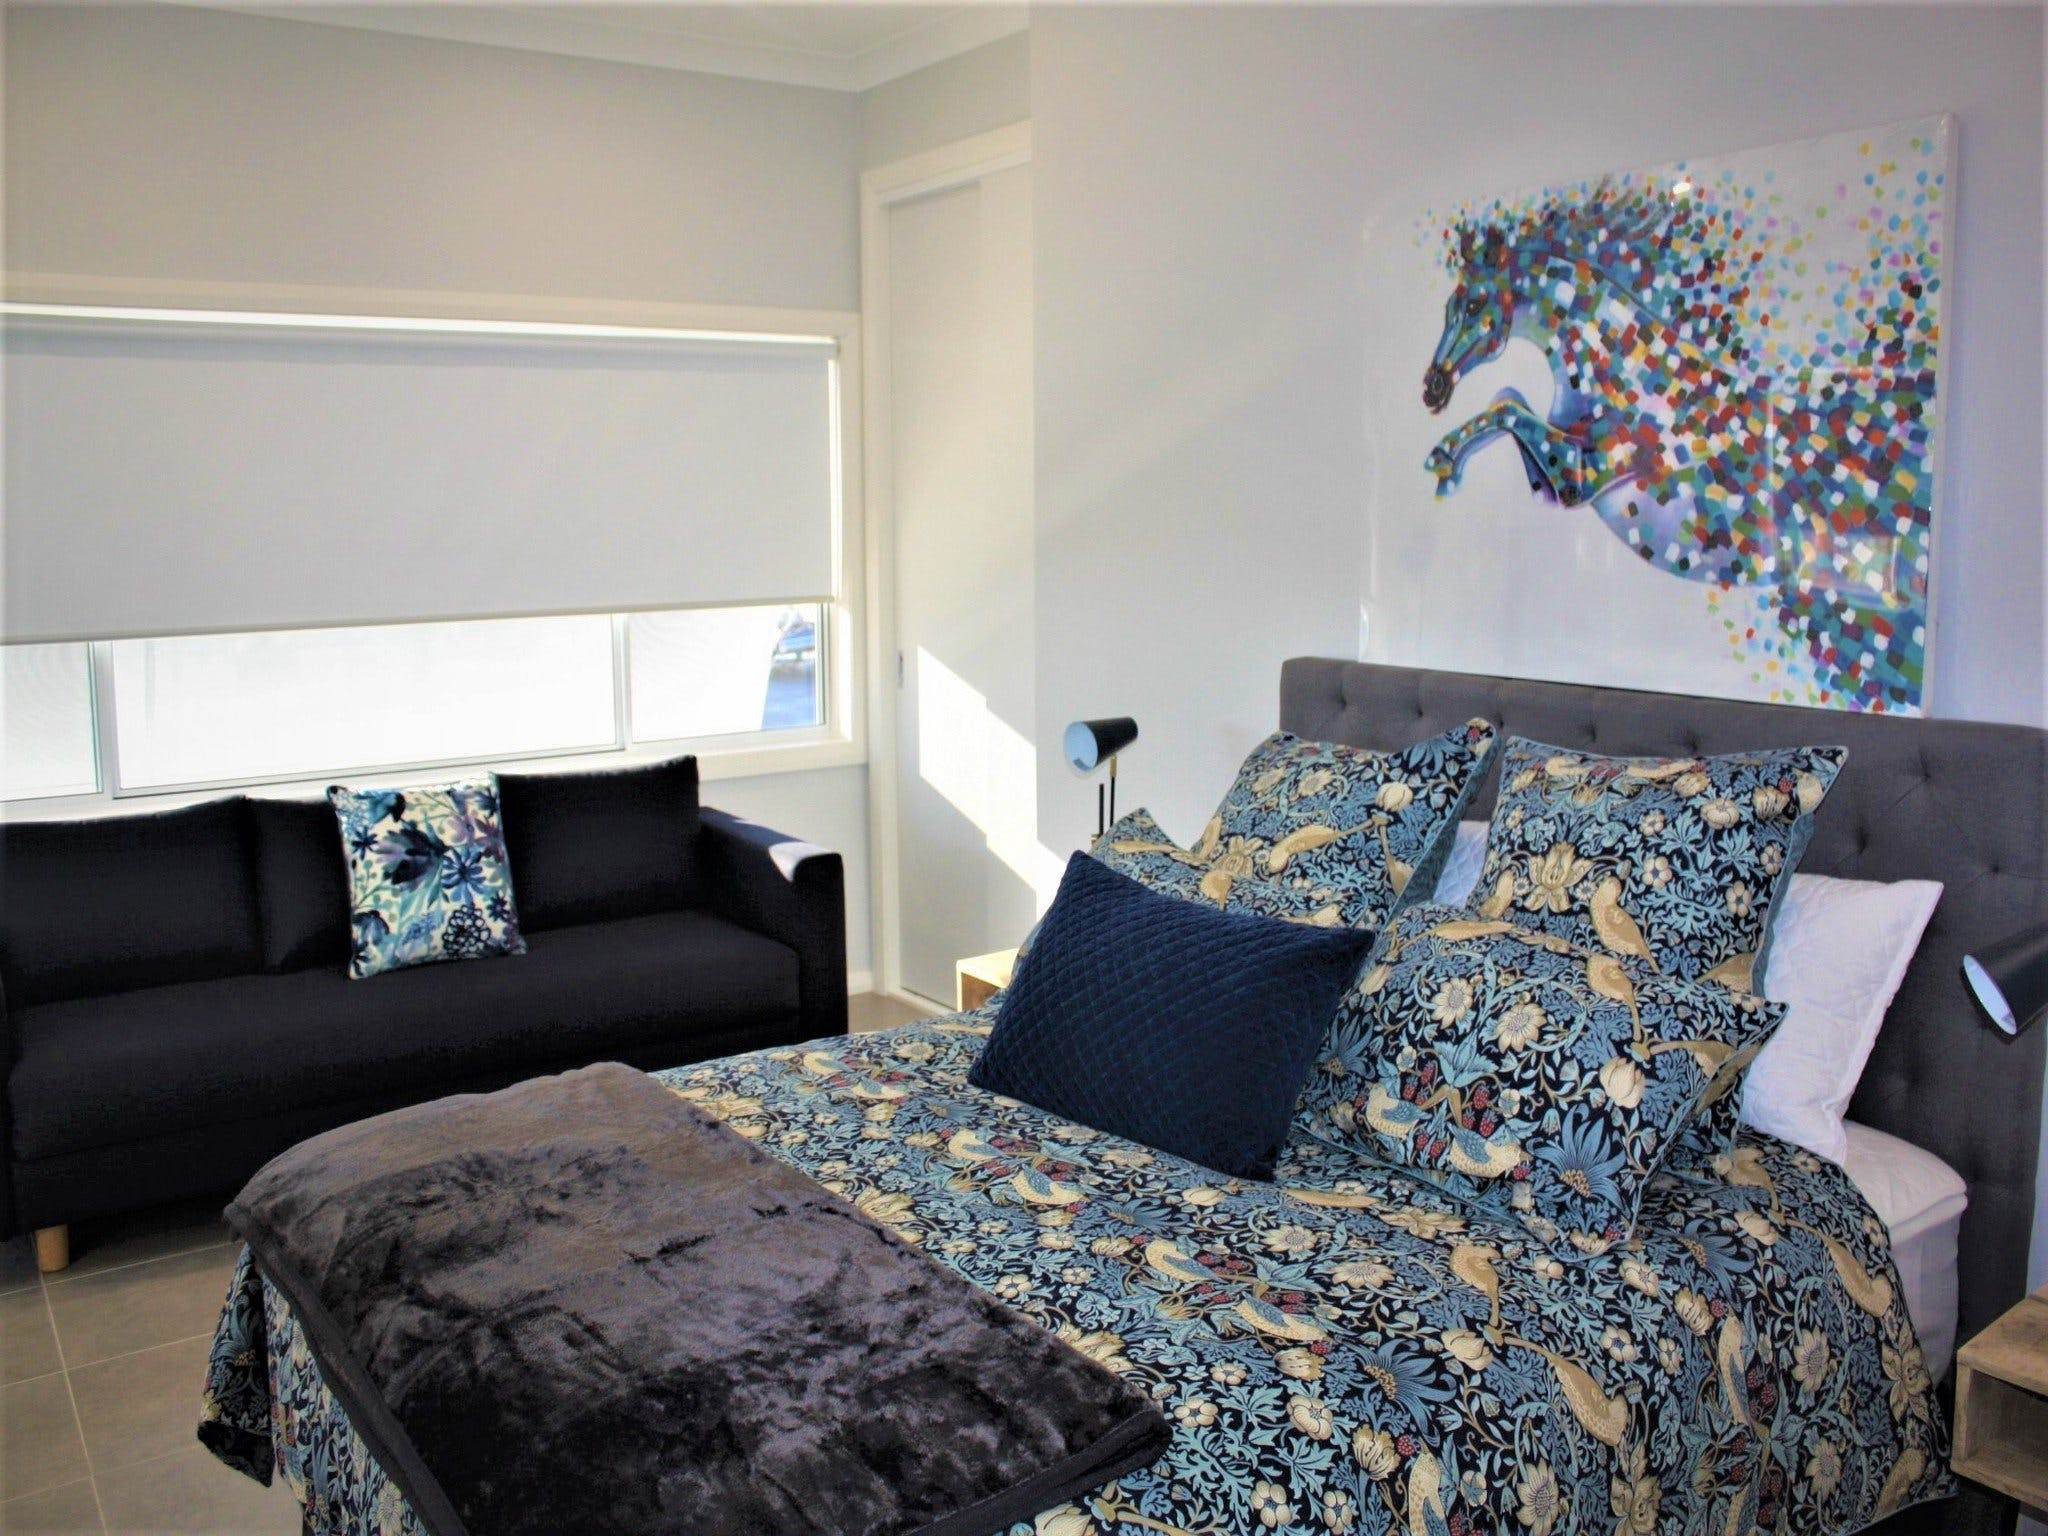 Coolah Shorts - Self Contained Apartments - Nambucca Heads Accommodation